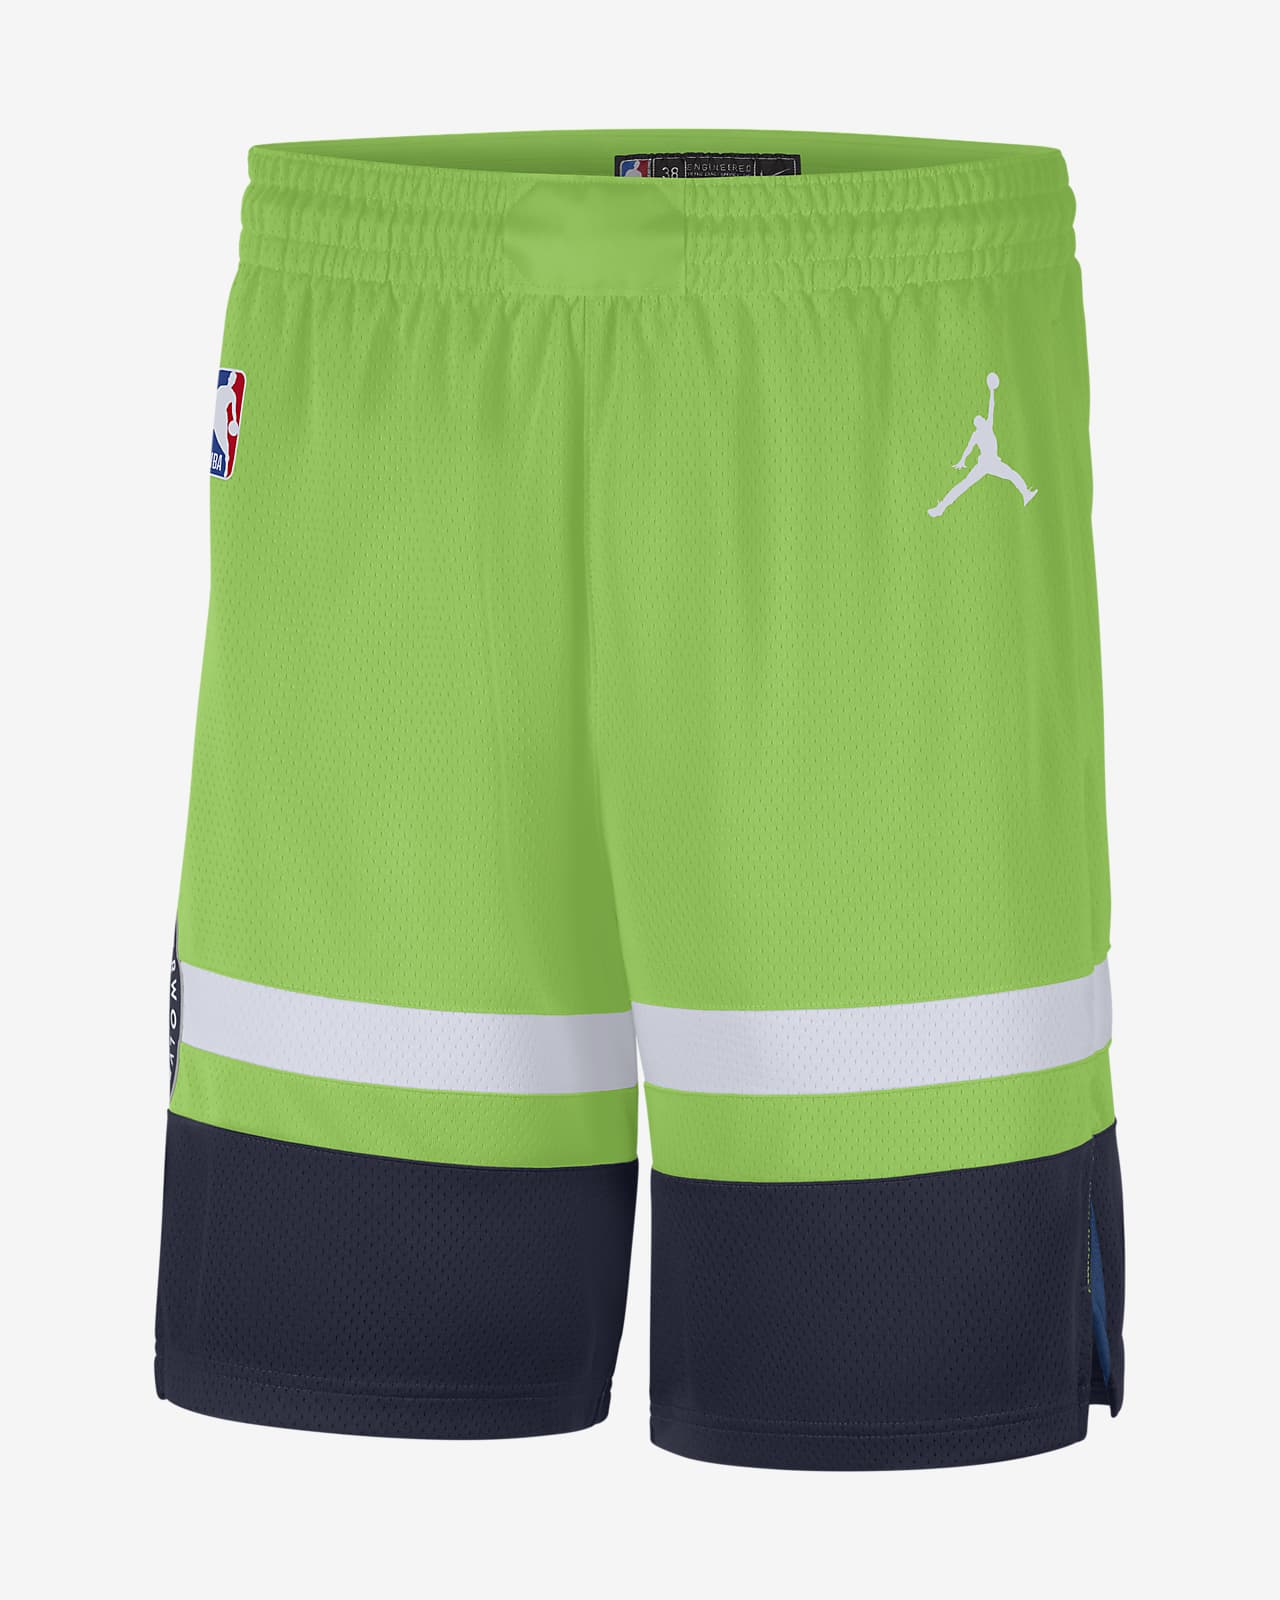 Timberwolves Statement Edition 2020 Men's Jordan NBA Swingman Shorts